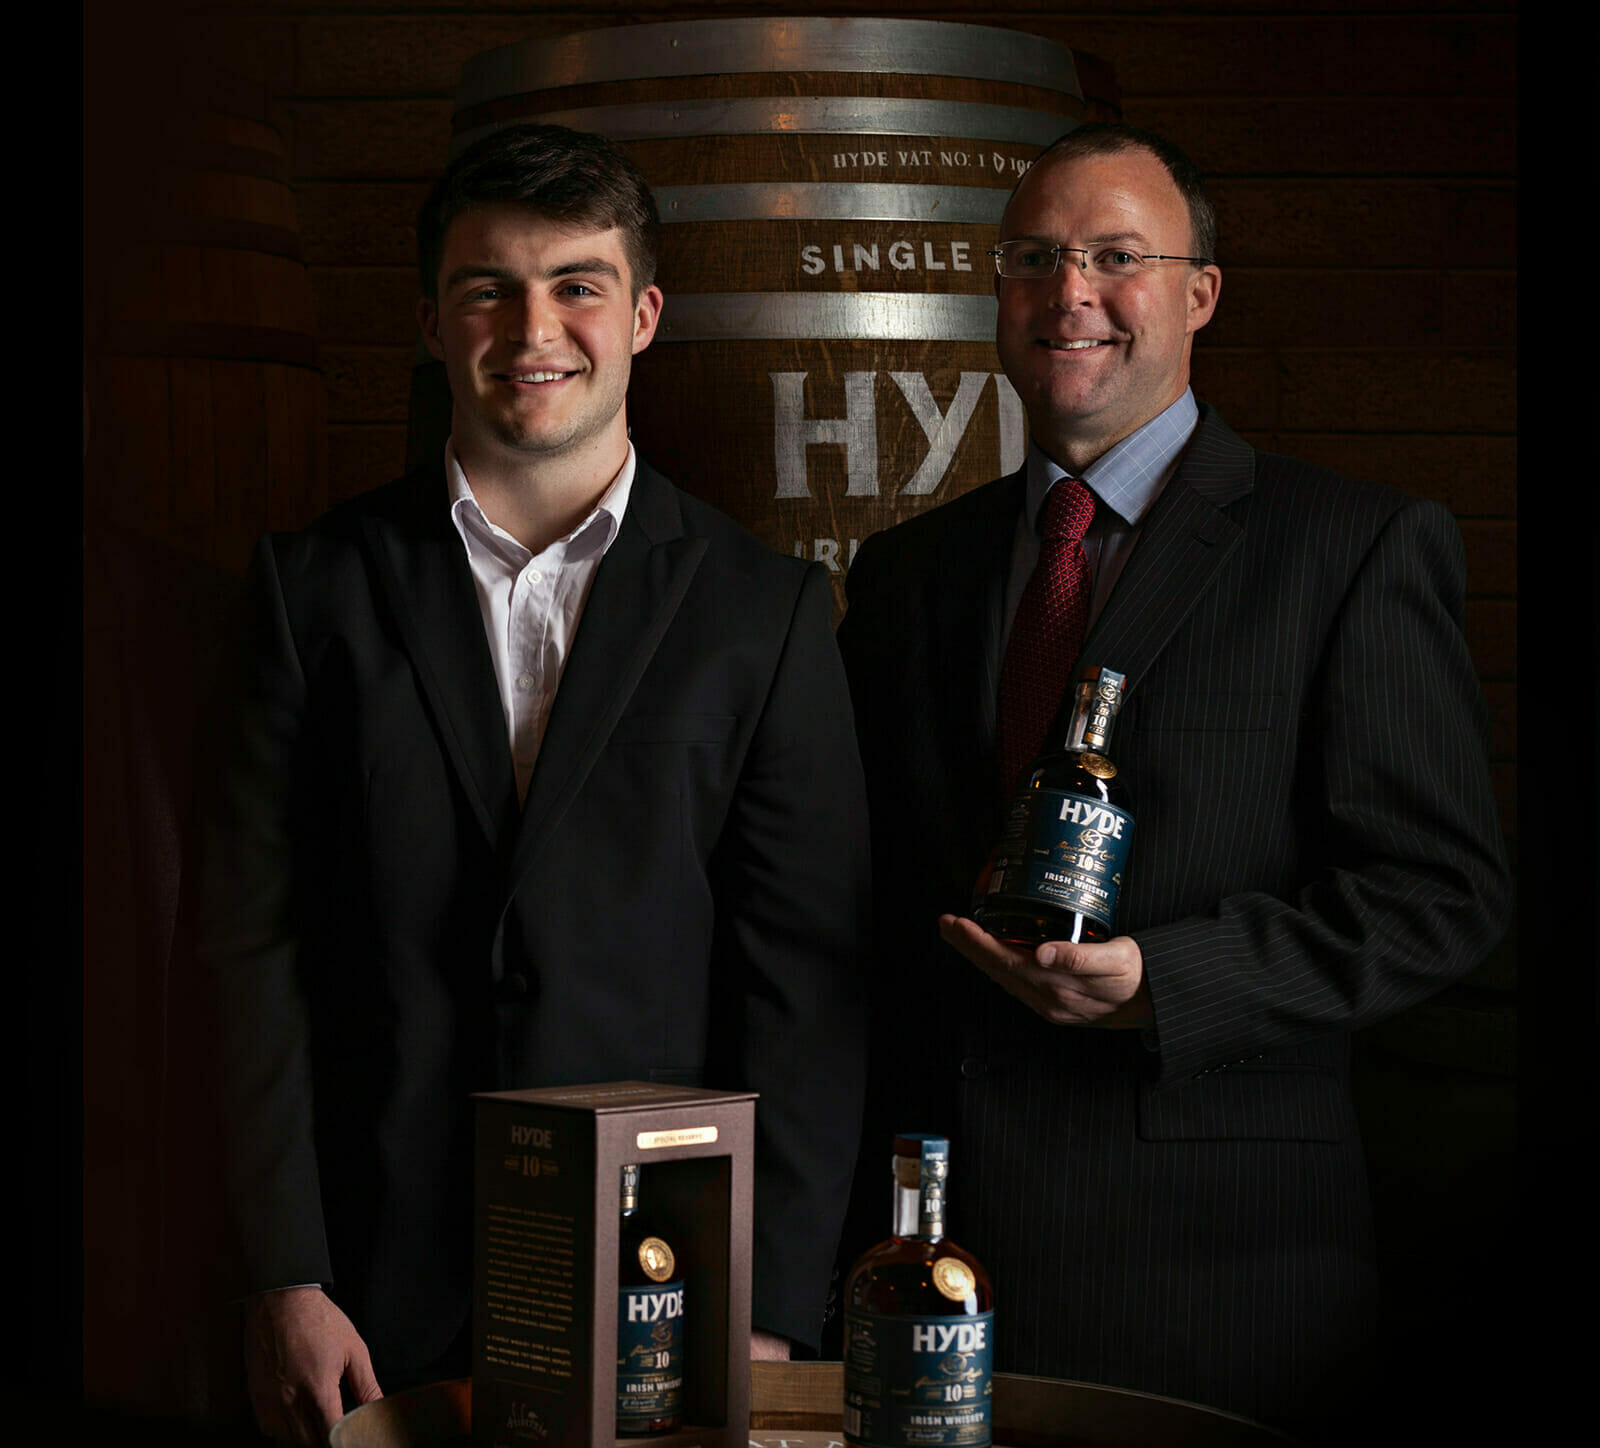 Hyde Whiskey, A Presidential Quality Whiskey To Love